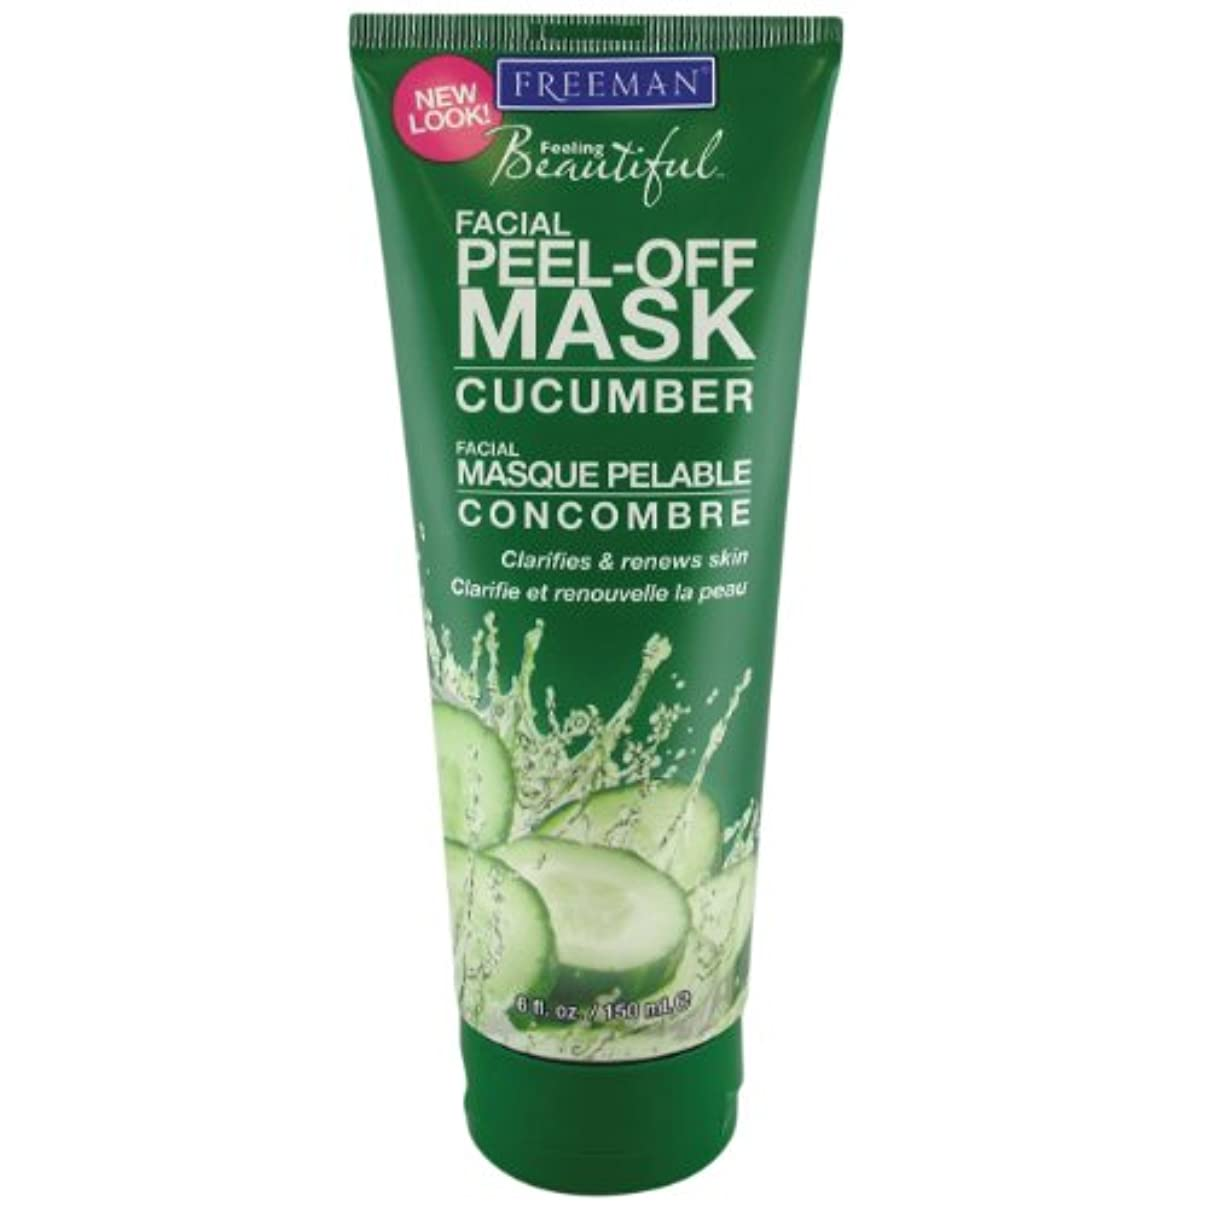 Freeman Facial Peel-Off Mask Cucumber 150 ml (並行輸入品)